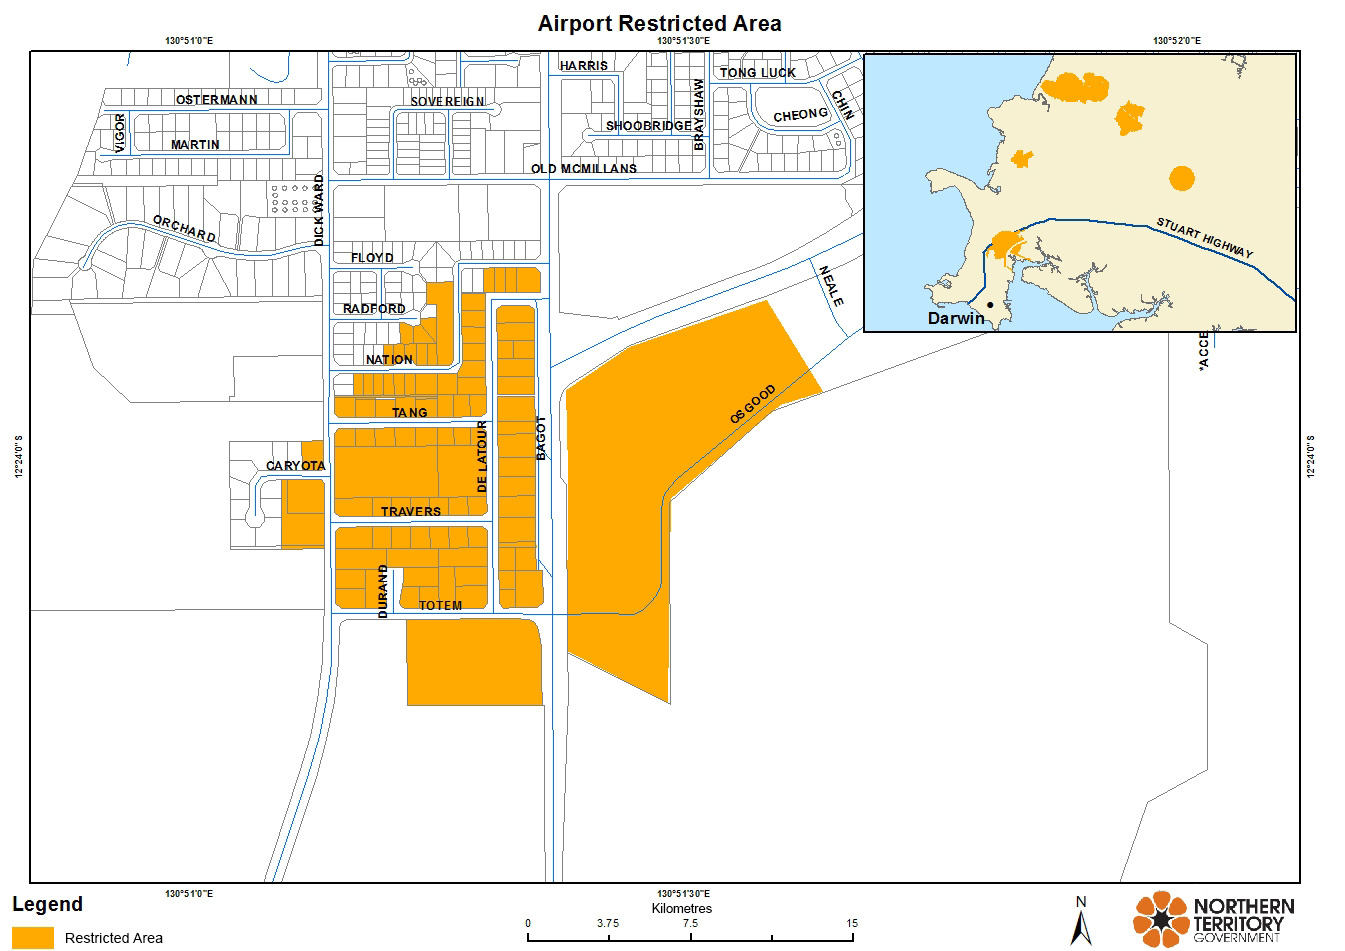 A map showing the restricted area of the Darwin Airport region.